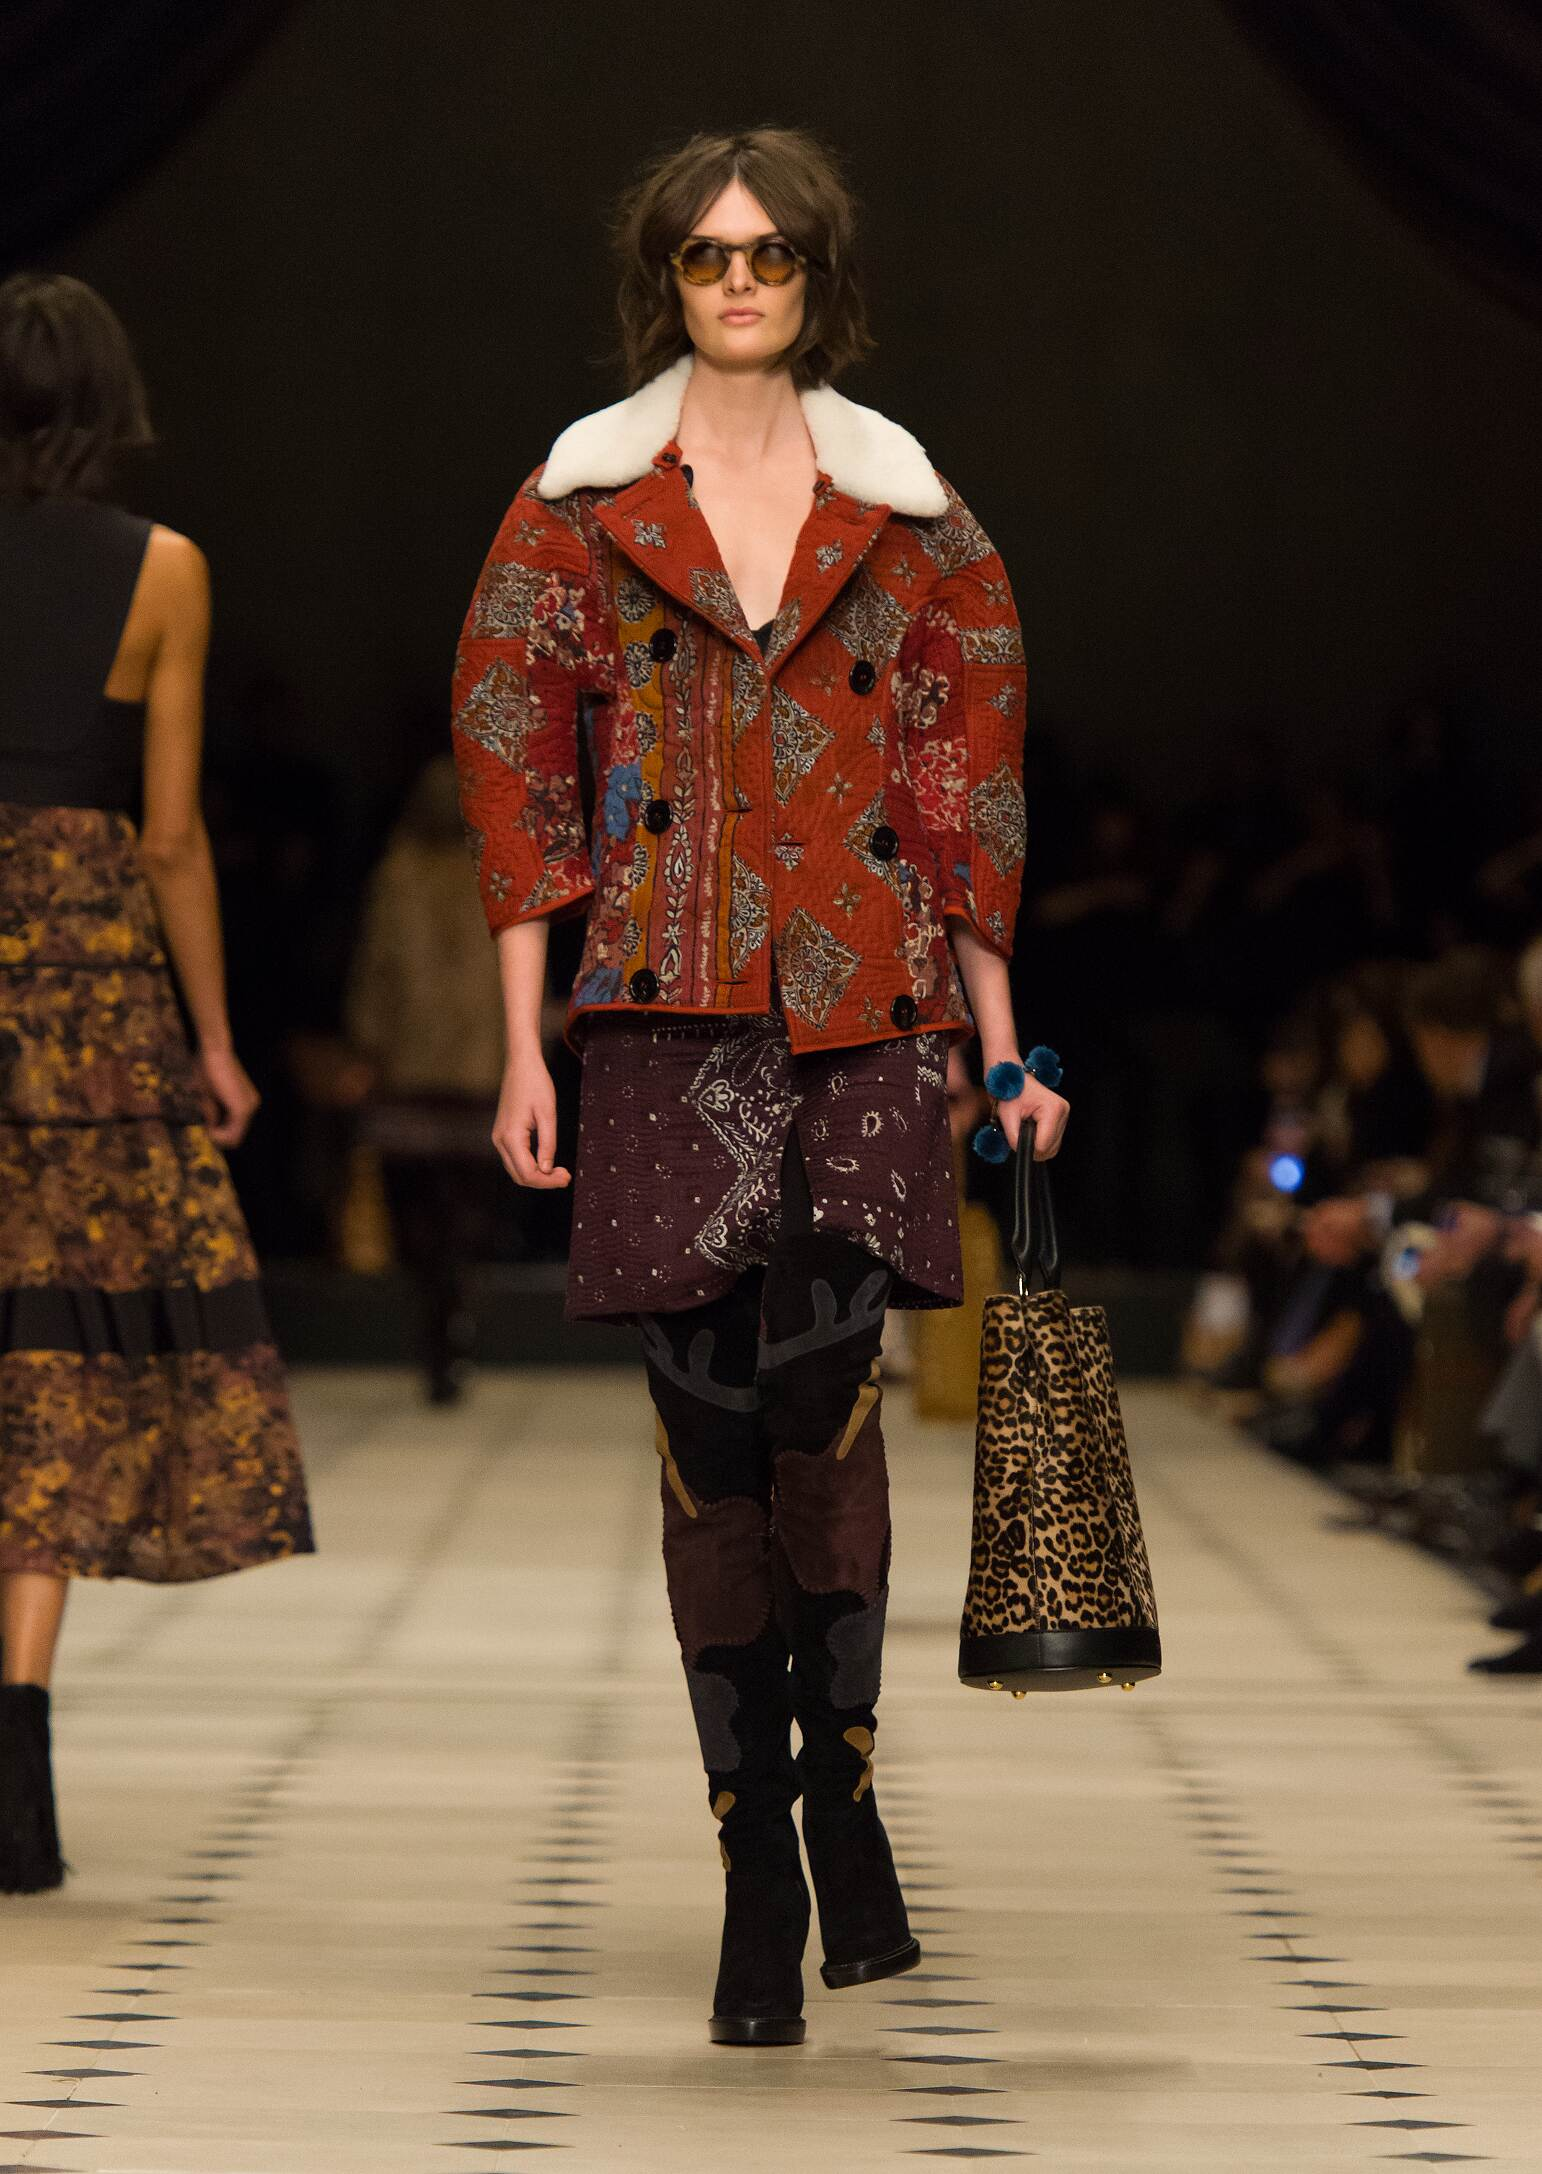 Winter Fashion Trends 2015 2016 Burberry Prorsum Collection